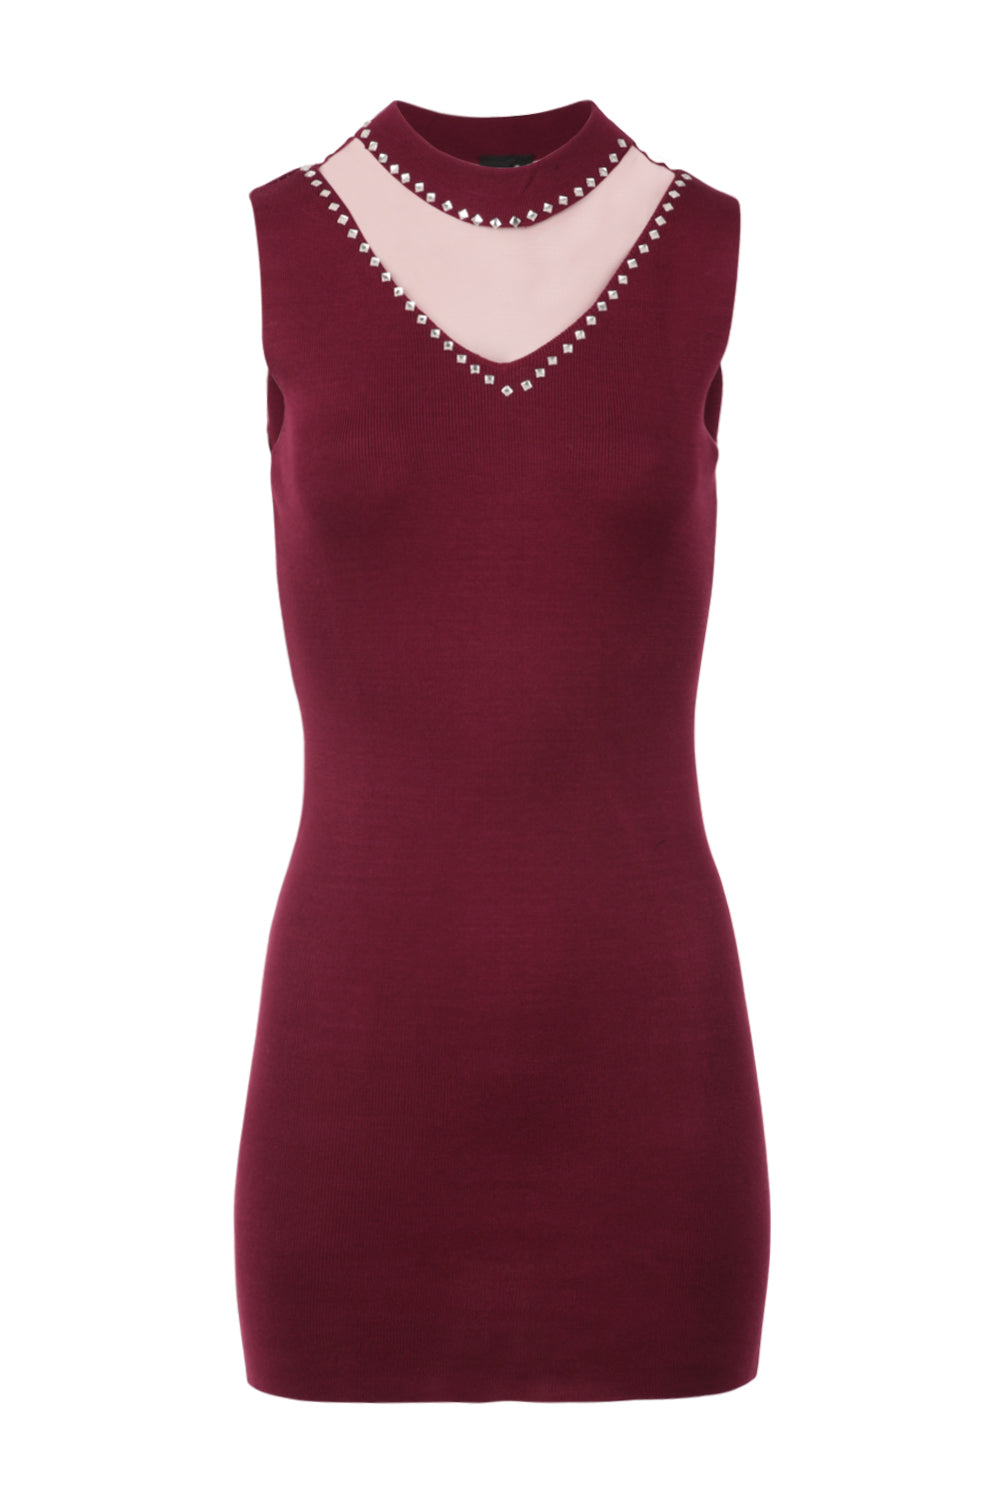 Embellished Trim Knit Dress - Izabel London